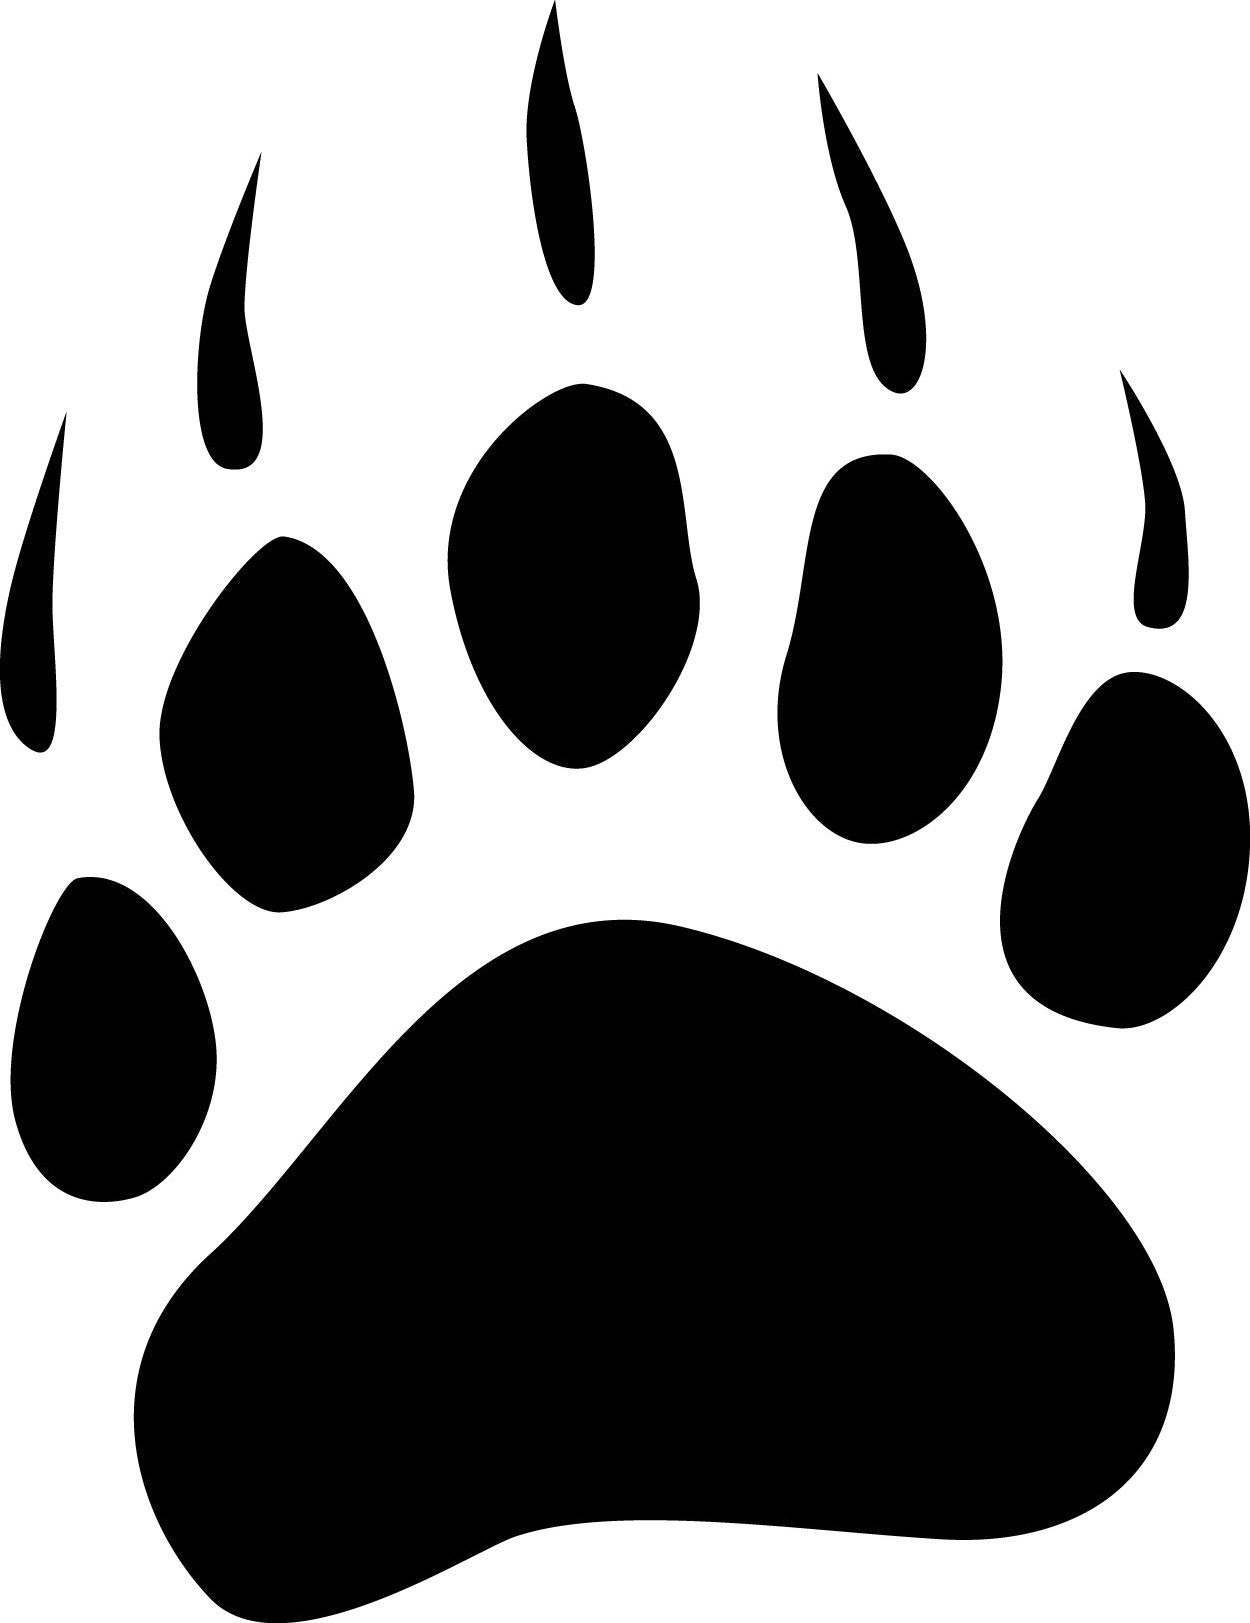 Furniture leg claws black and white clipart vector transparent download Bearcat Paw Clip Art | bear paw tracks free cliparts that you can ... vector transparent download